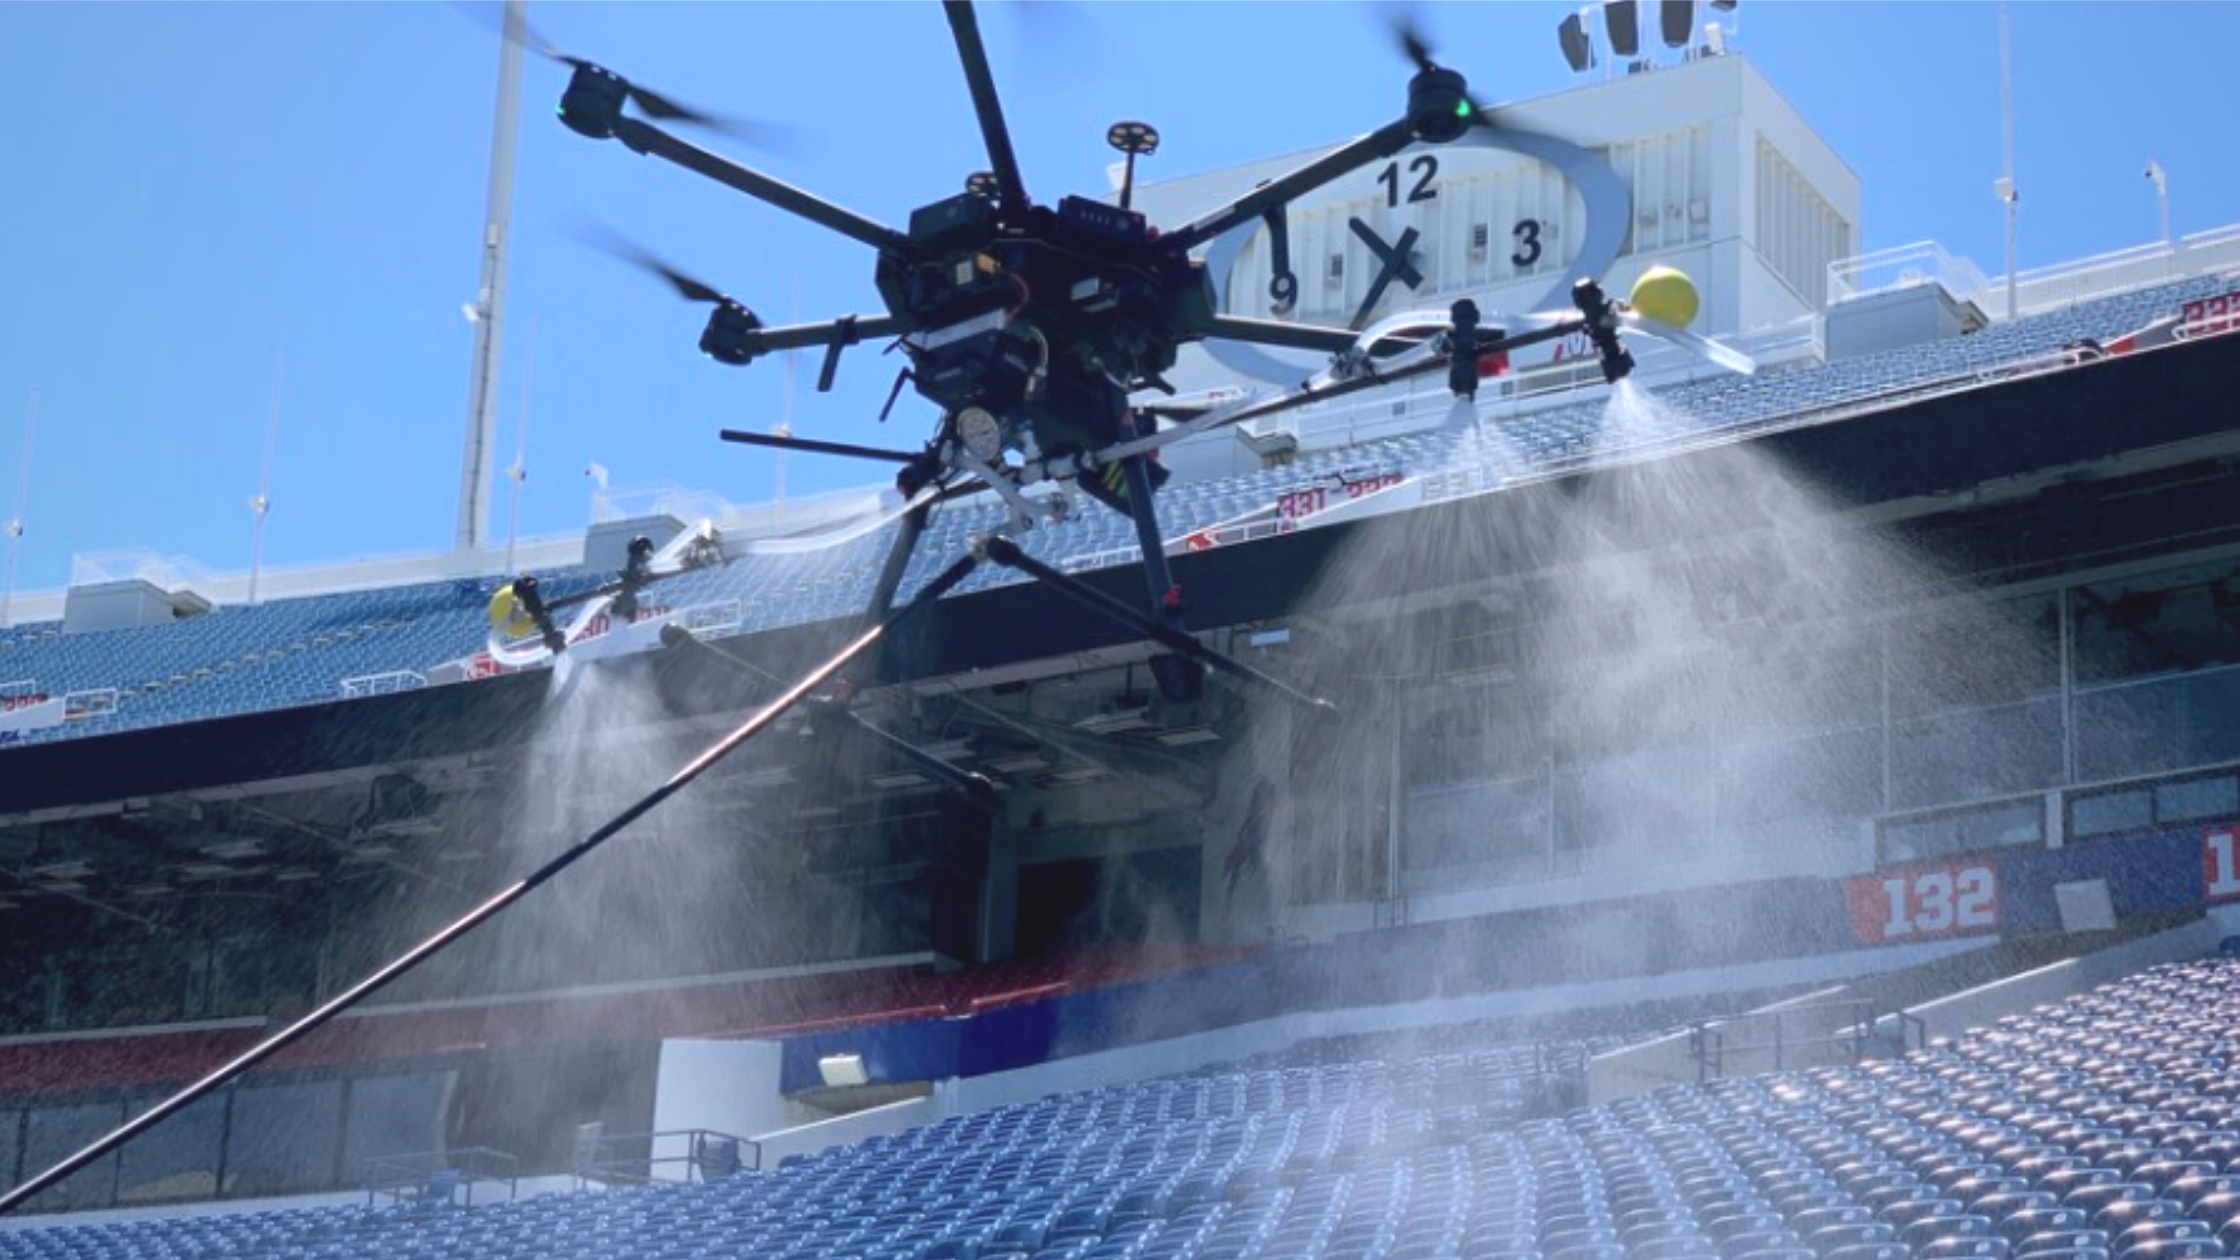 Disinfecting Large Venues with Drones